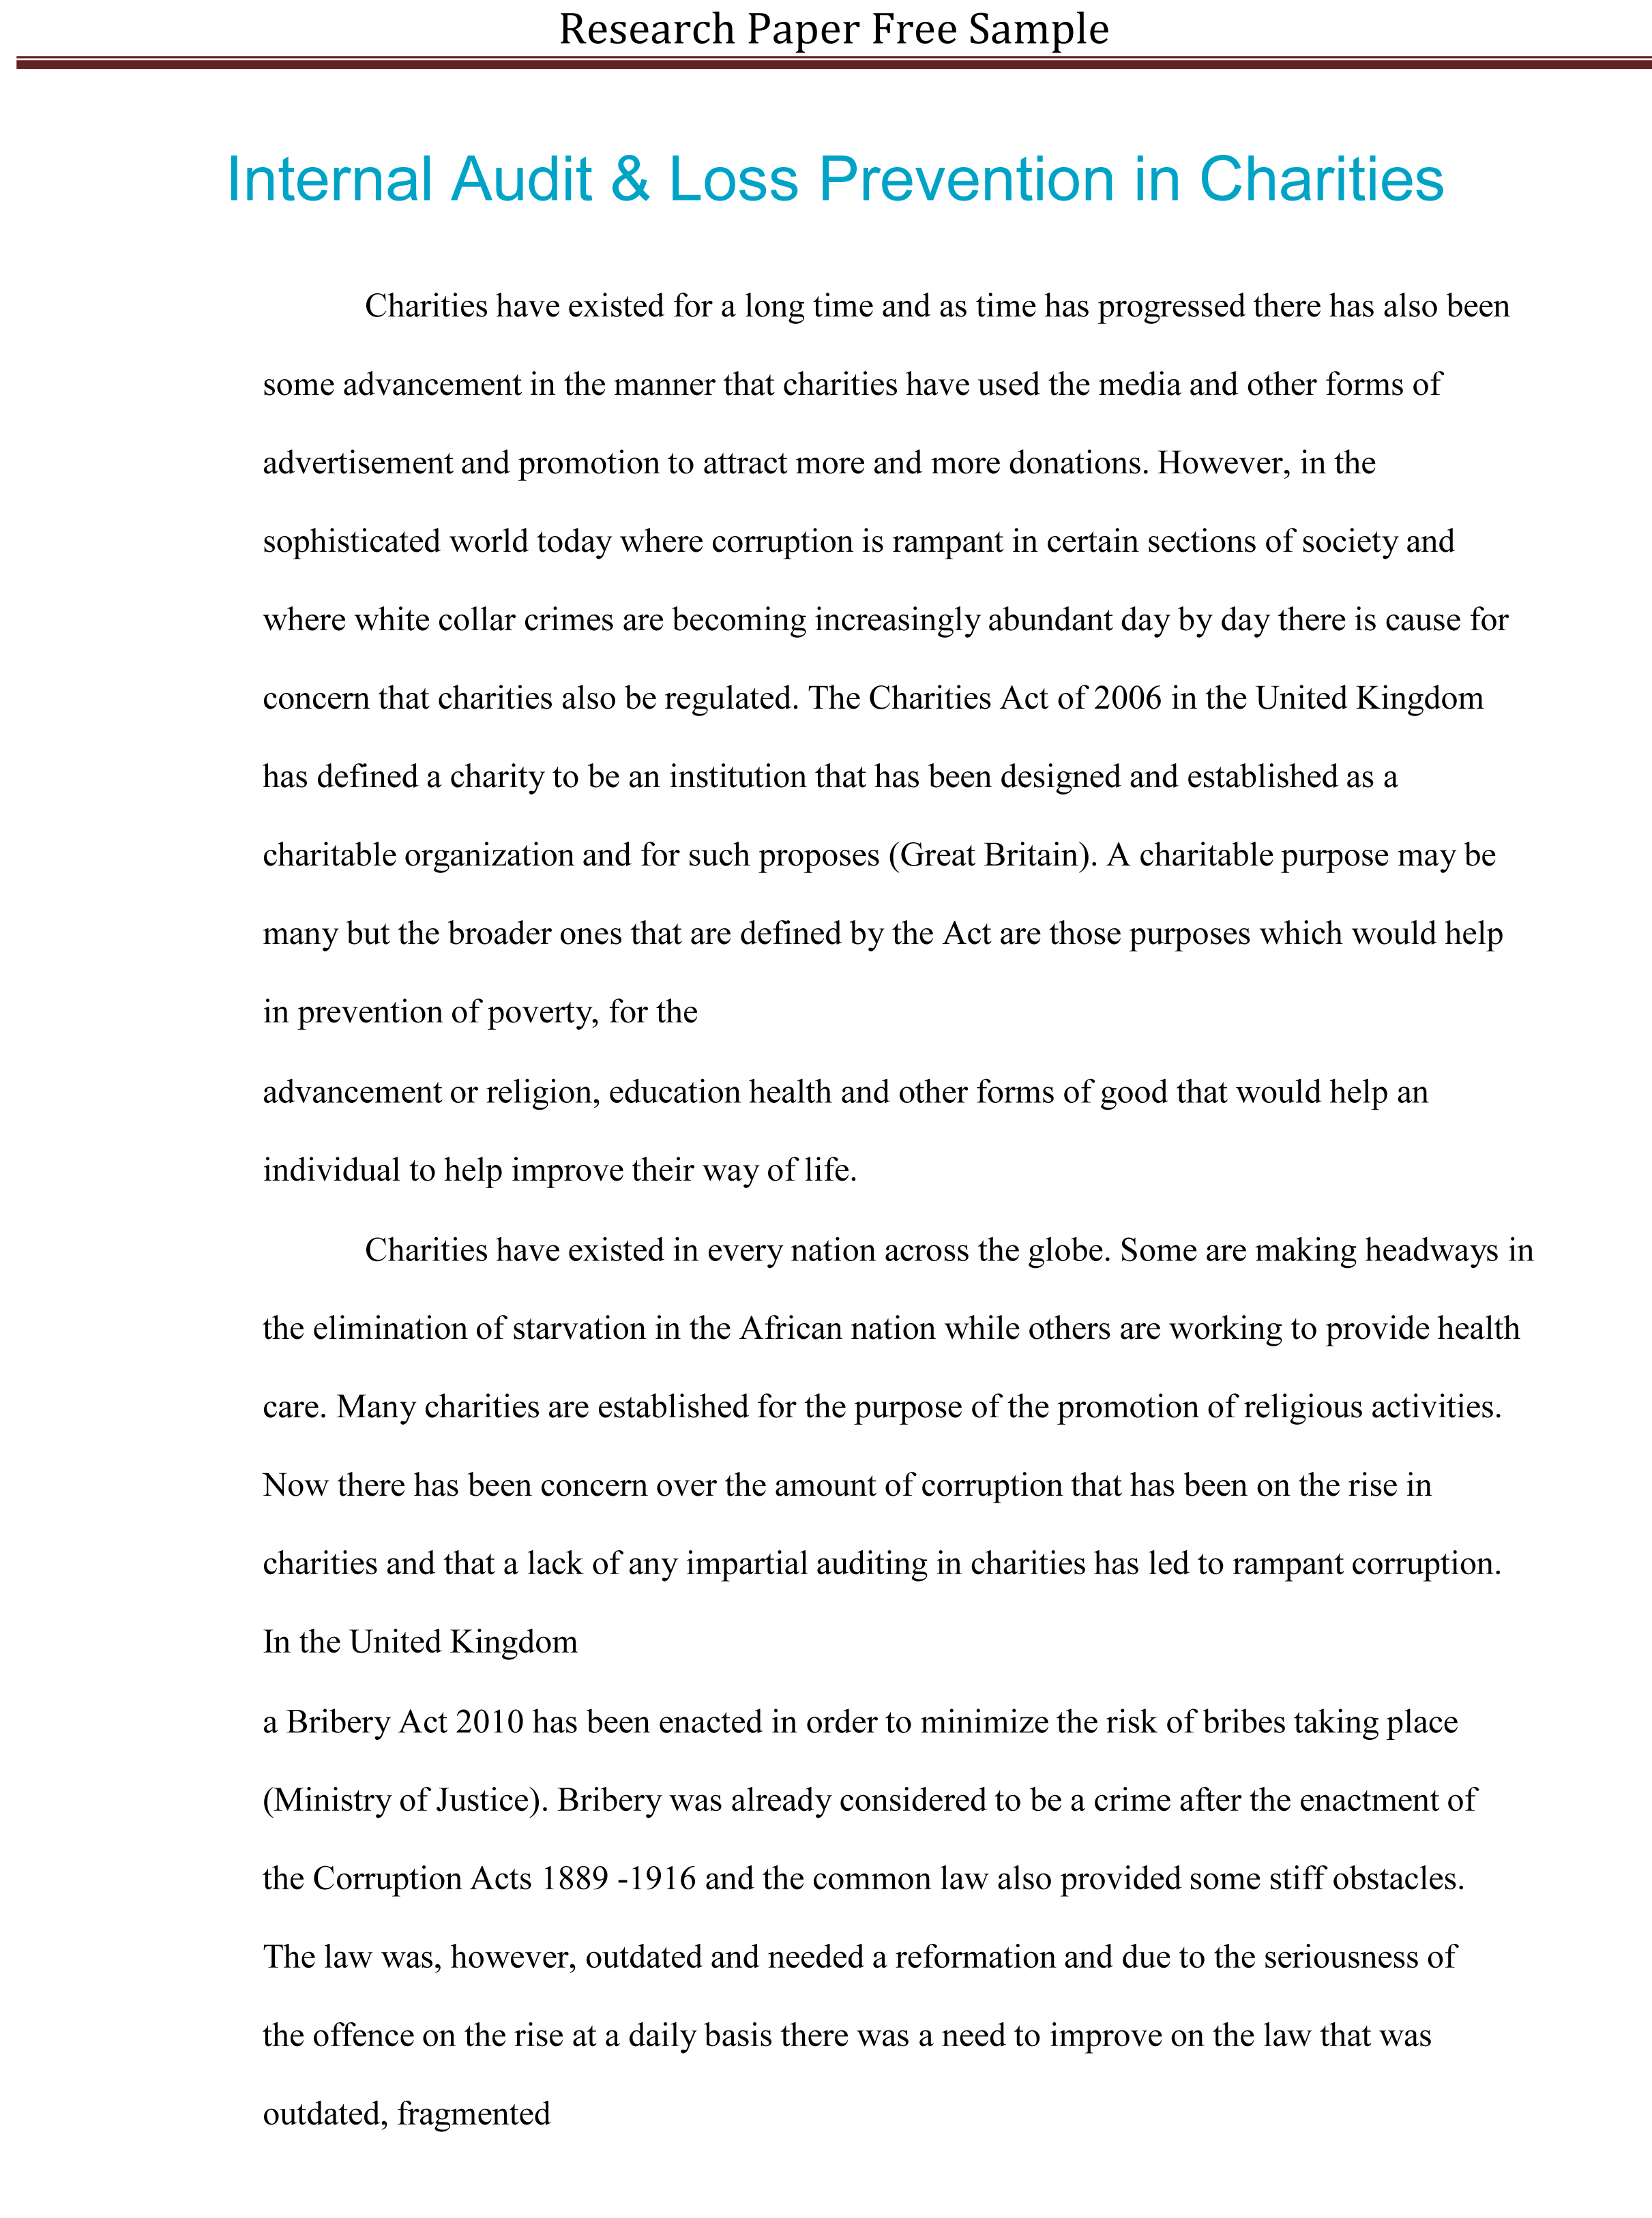 010 Writing An Introduction To Research Paper Help Paragraph Top A Intro Steps In Full